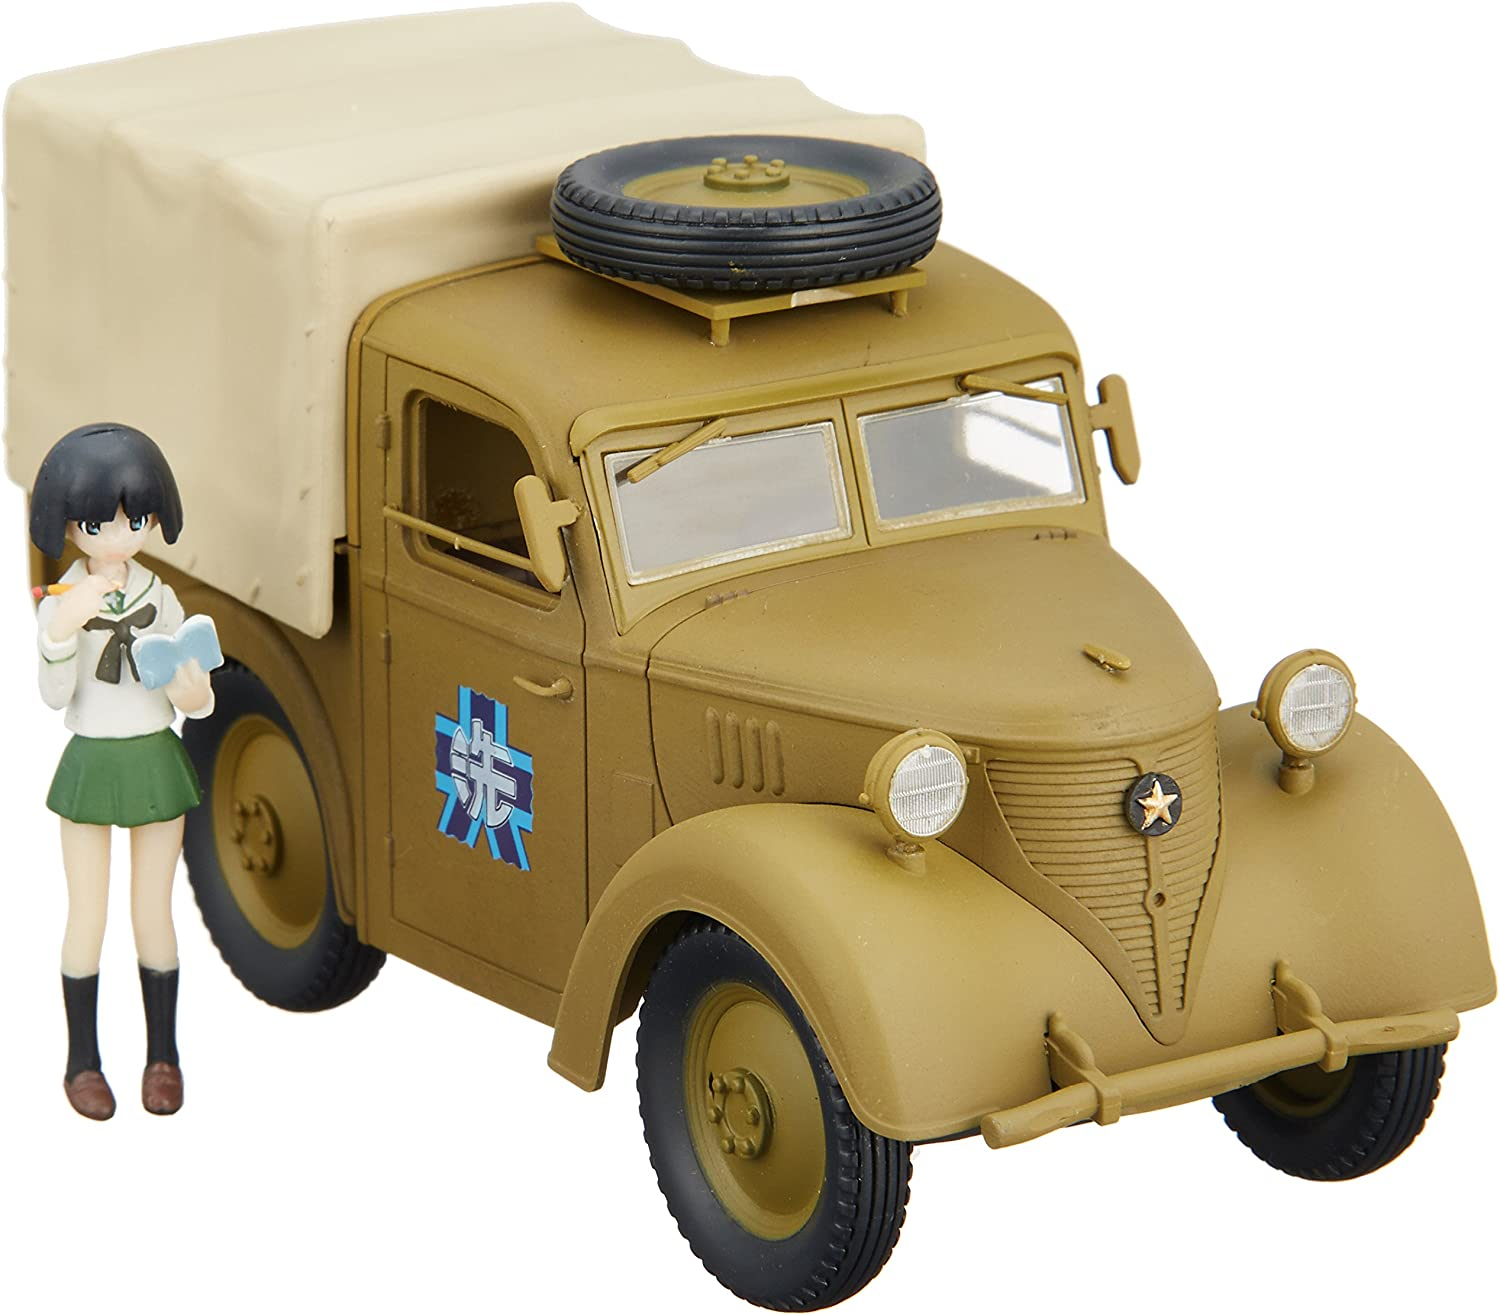 Ninetyfive expression small passenger cars & Garden Midoriko 1 35 Prefectural Oarai girls school public relations car (painted finished goods)